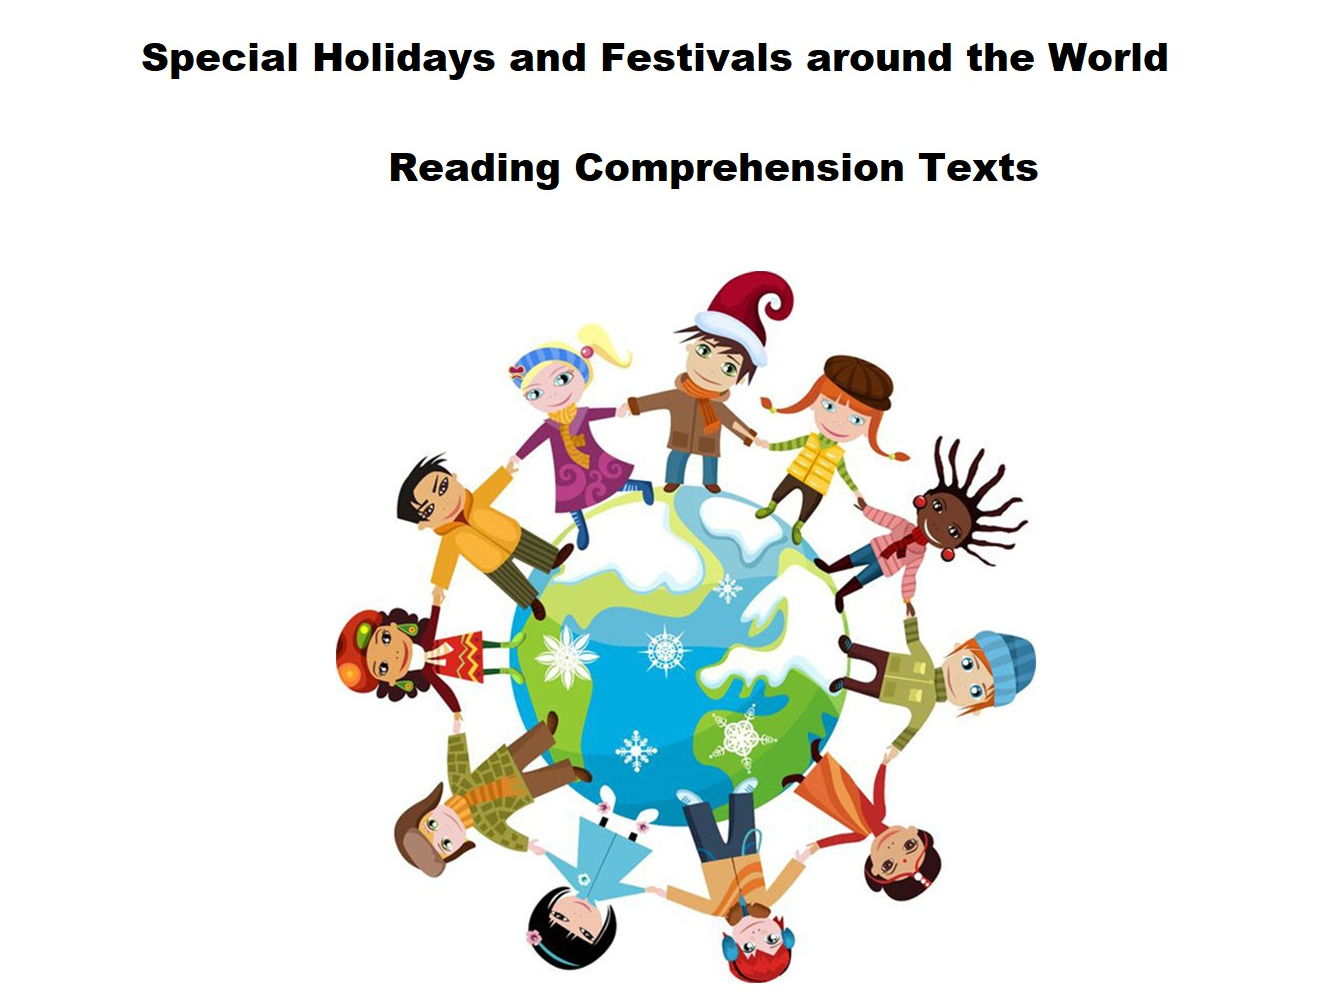 Festivals and Special Holidays Around The World - Reading Comprehension Super Bundle! (SAVE 85%)